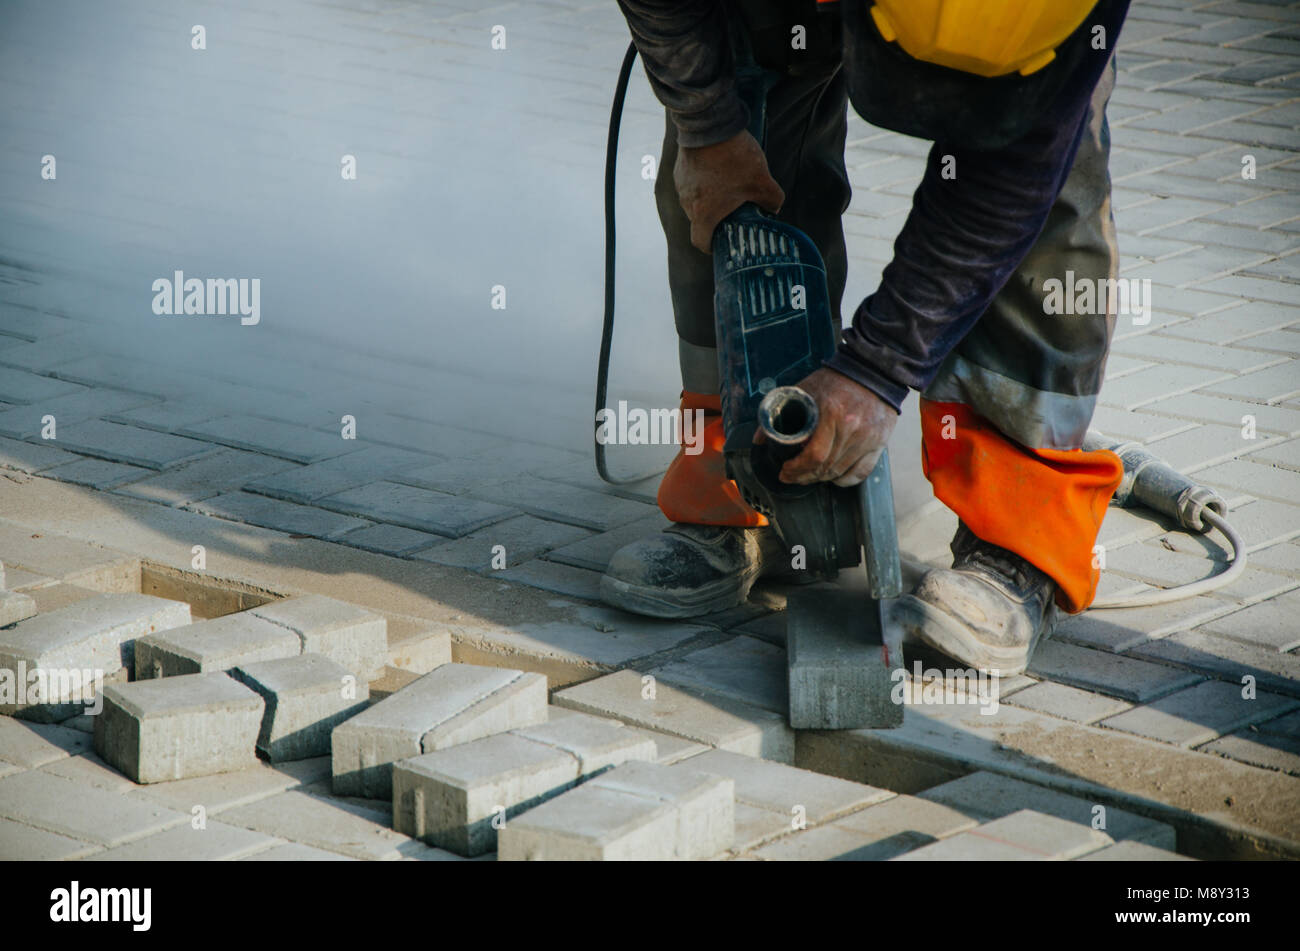 Builder of sidewalks in ravine, Lima - Peru Stock Photo